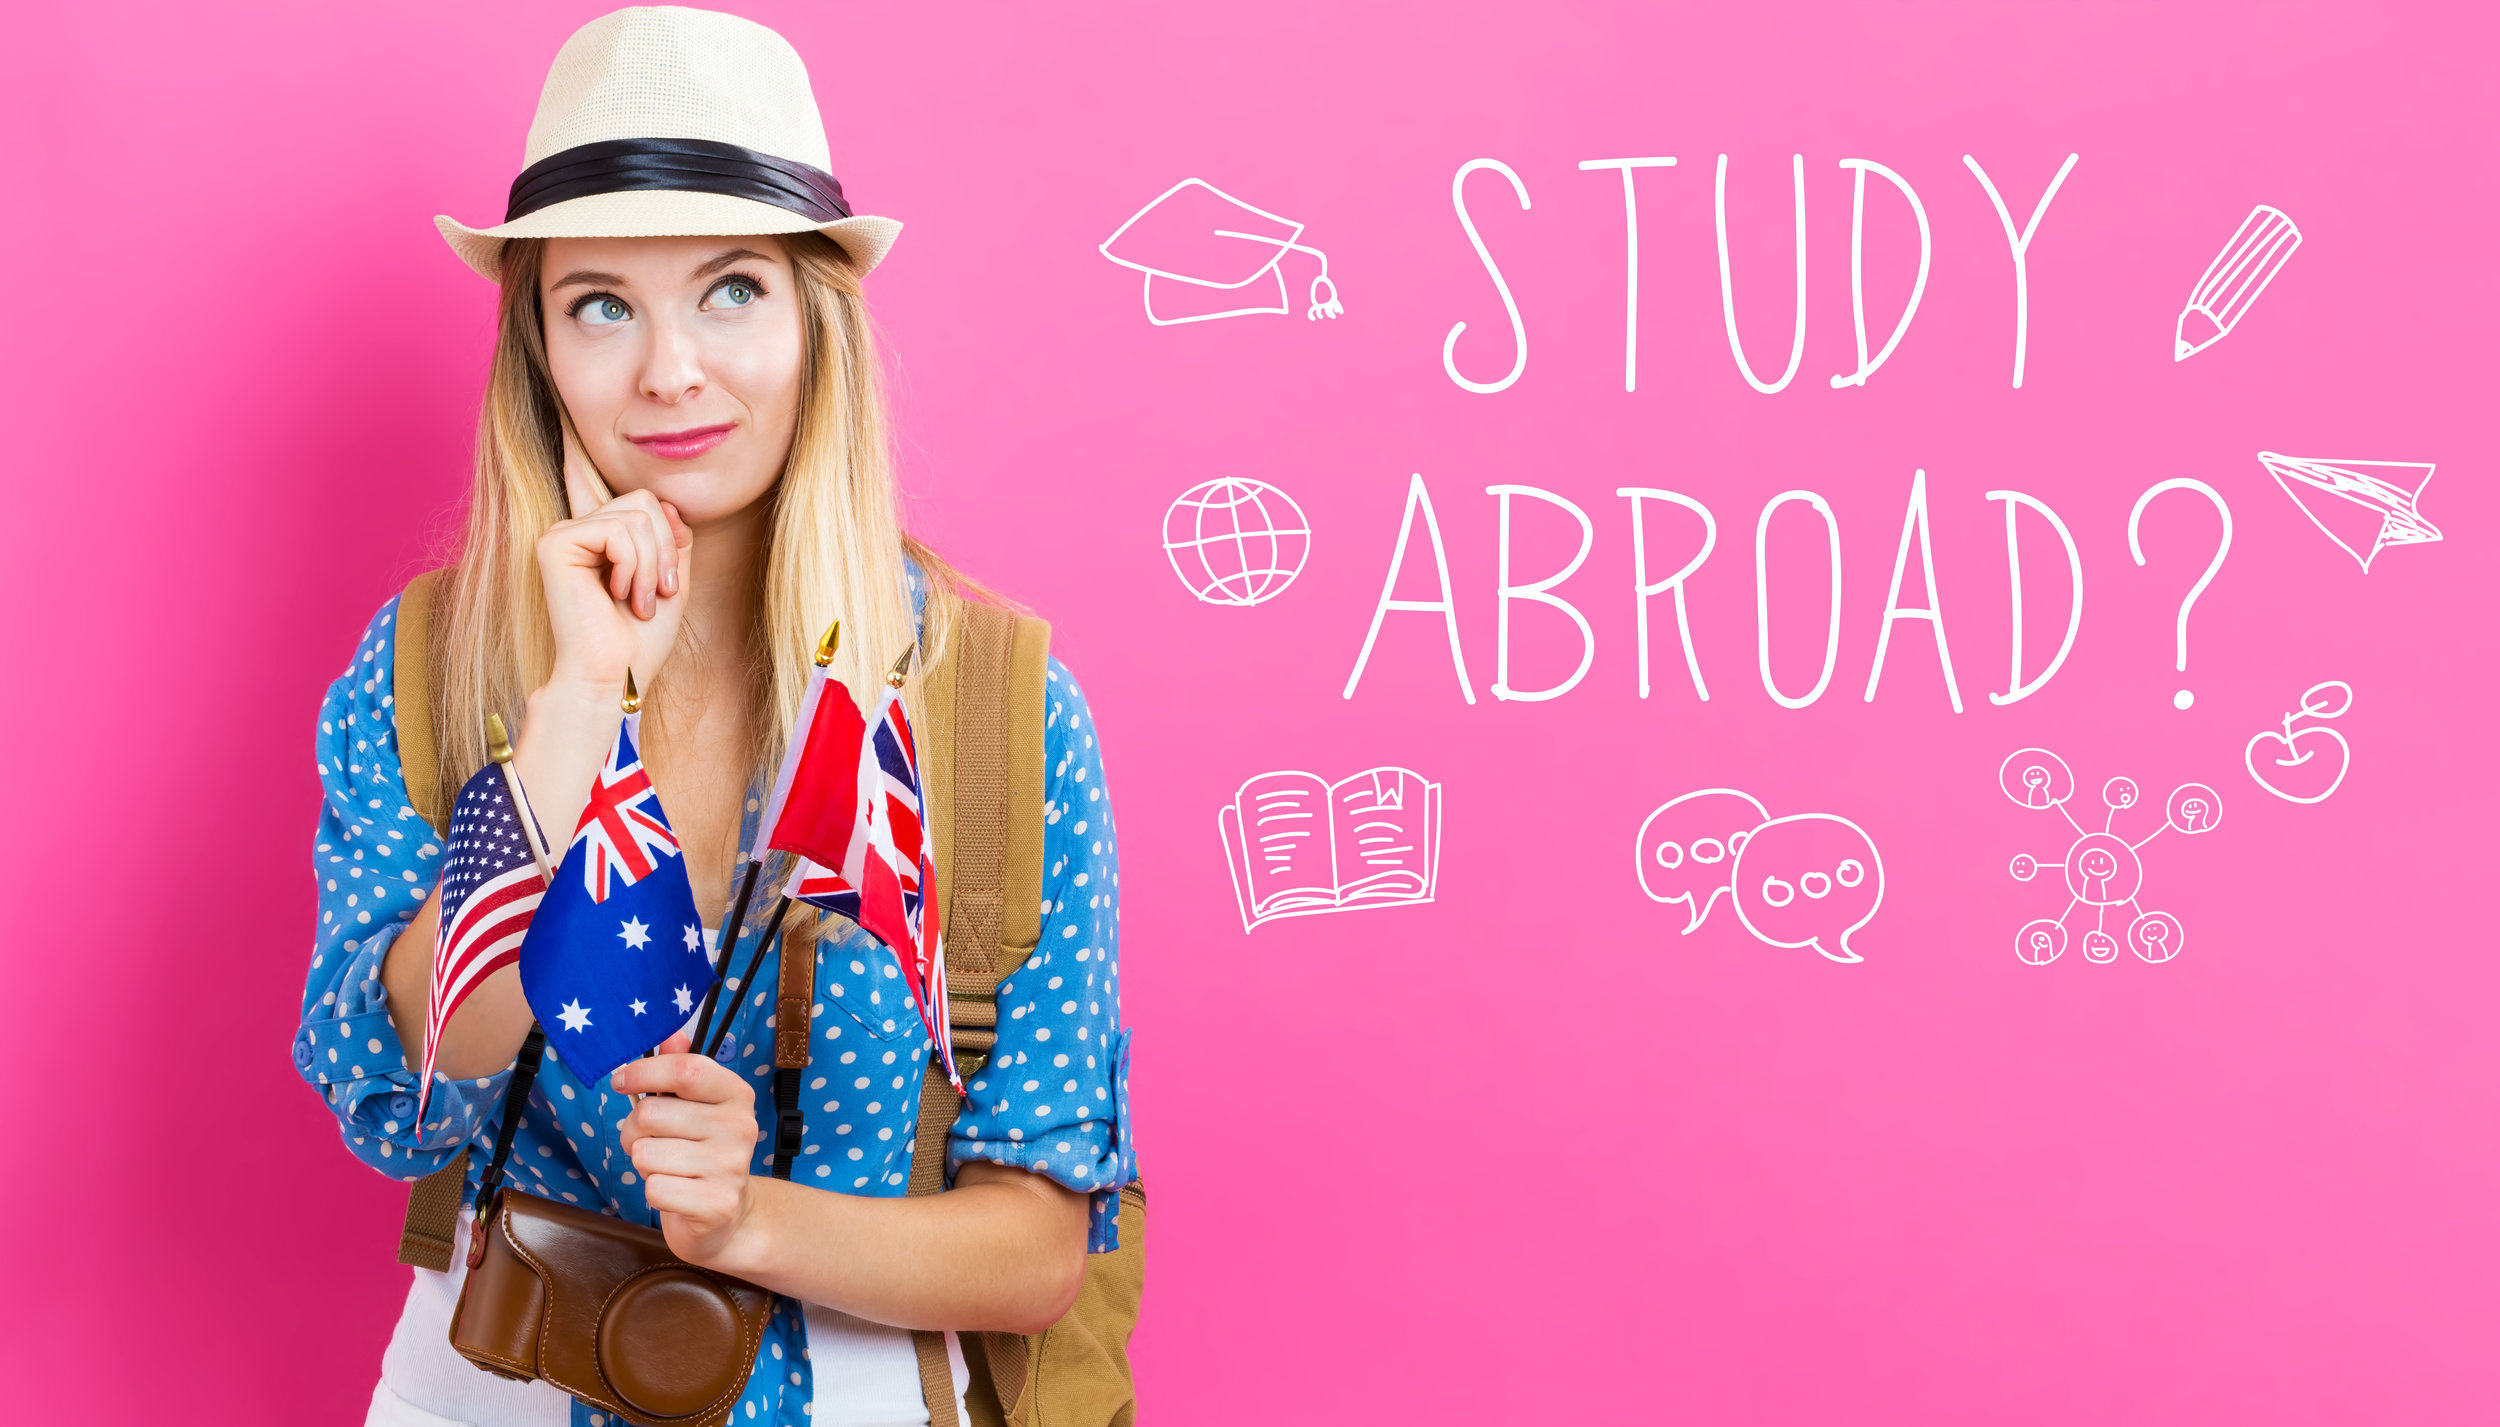 What to say in a study abroad essay